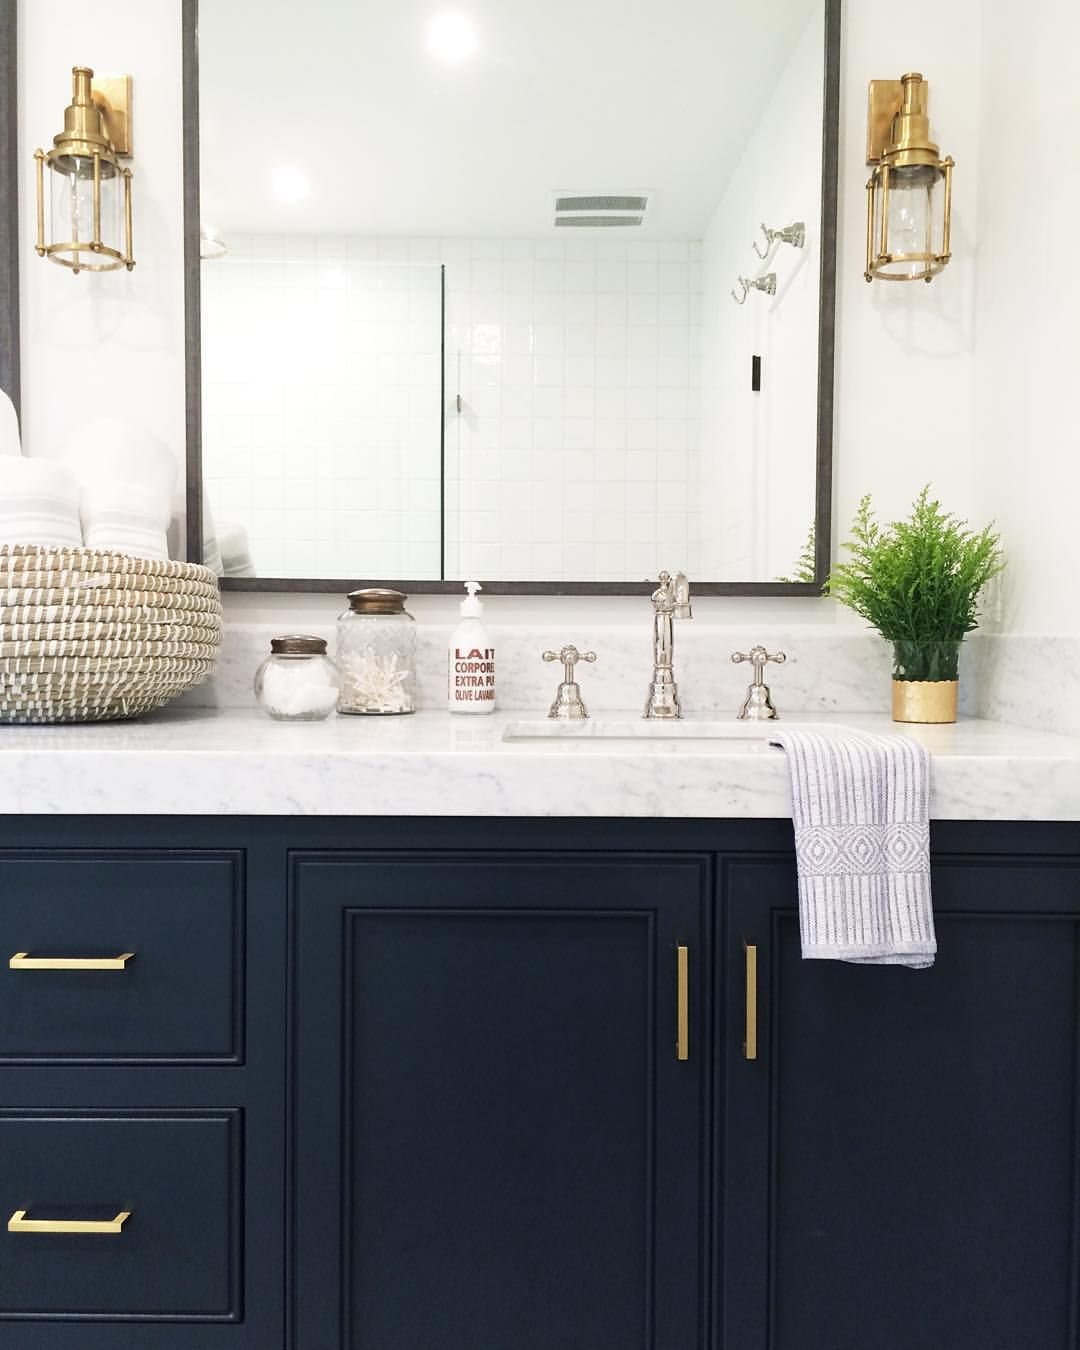 American classics bathroom vanities - Navy Vanity Gold Hardware Marble Vanity Gold Sconces Countertop Styling For Guest Bathroom